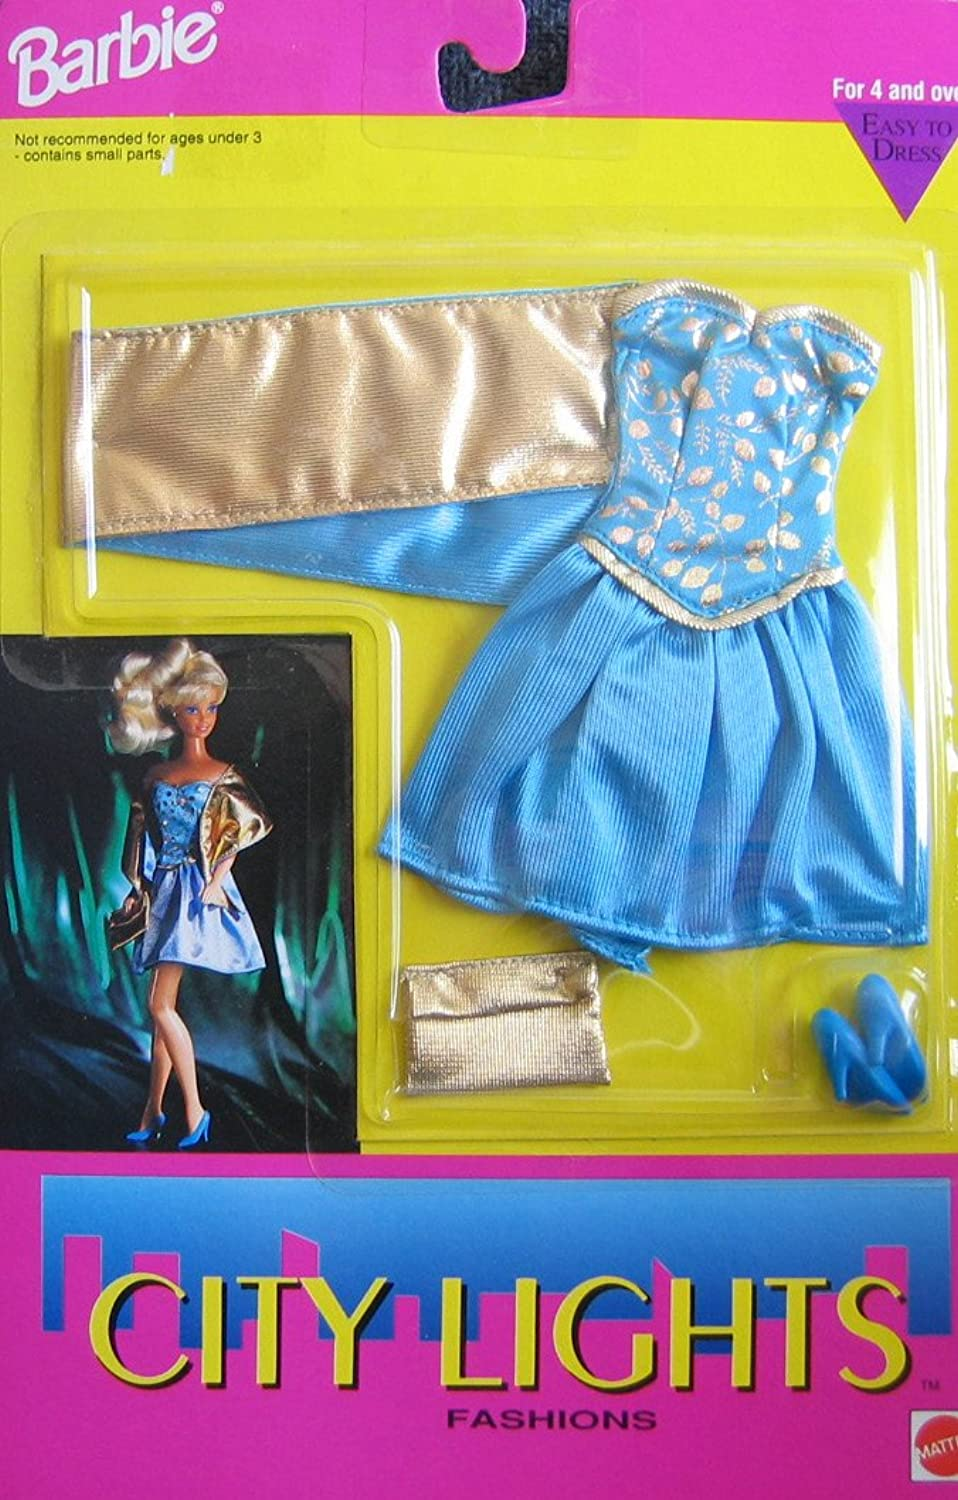 Barbie City Lights Fashions  Easy To Dress (1992 Arcotoys, Mattel)